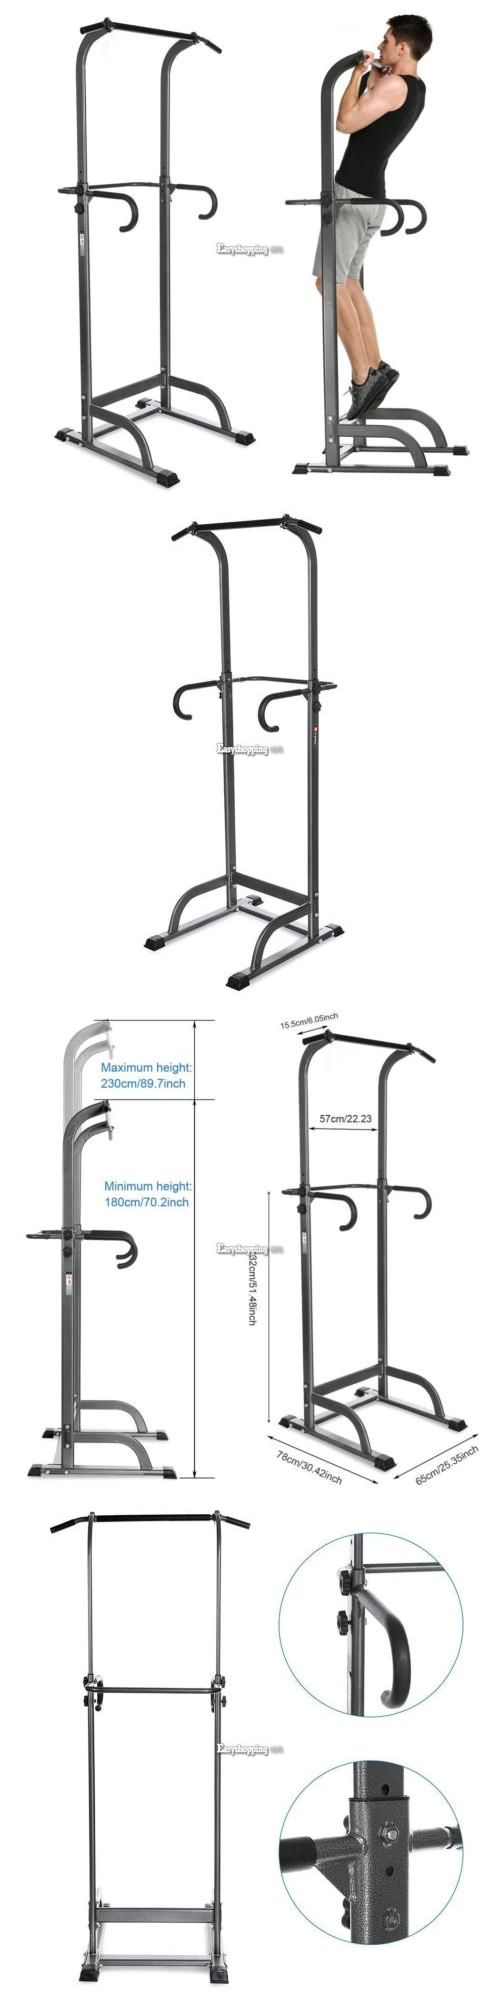 Push Up Stands 158925: Height Adjustable Power Tower Pull Up Chin Up Bar Exercise Fitness Gym Home Es9p -> BUY IT NOW ONLY: $107.33 on eBay!